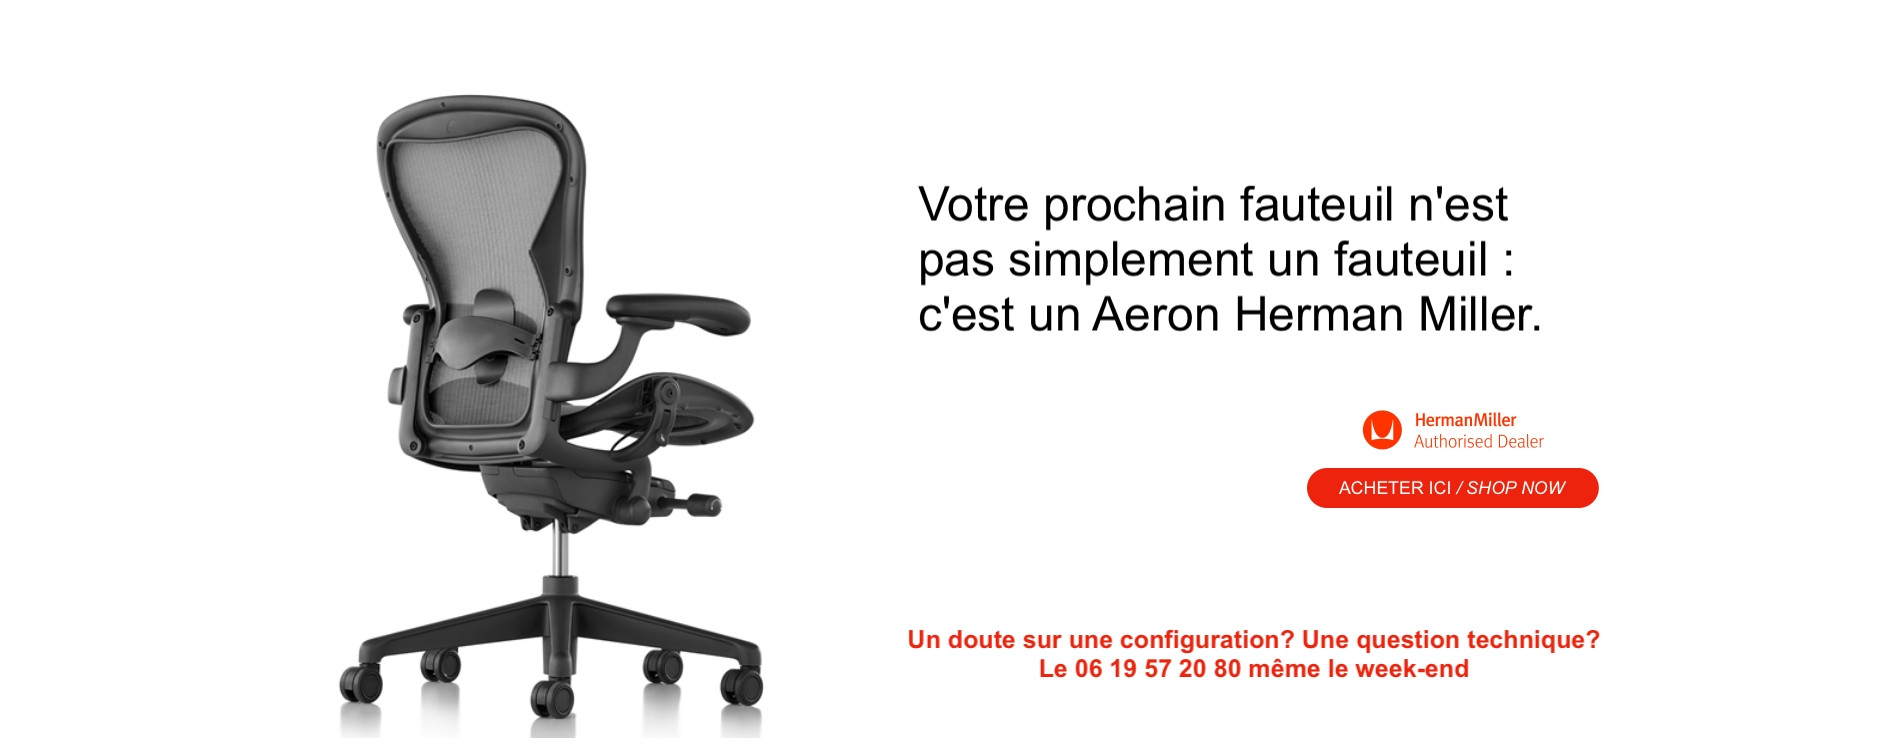 Your next chair is an Aeron Herman Miller